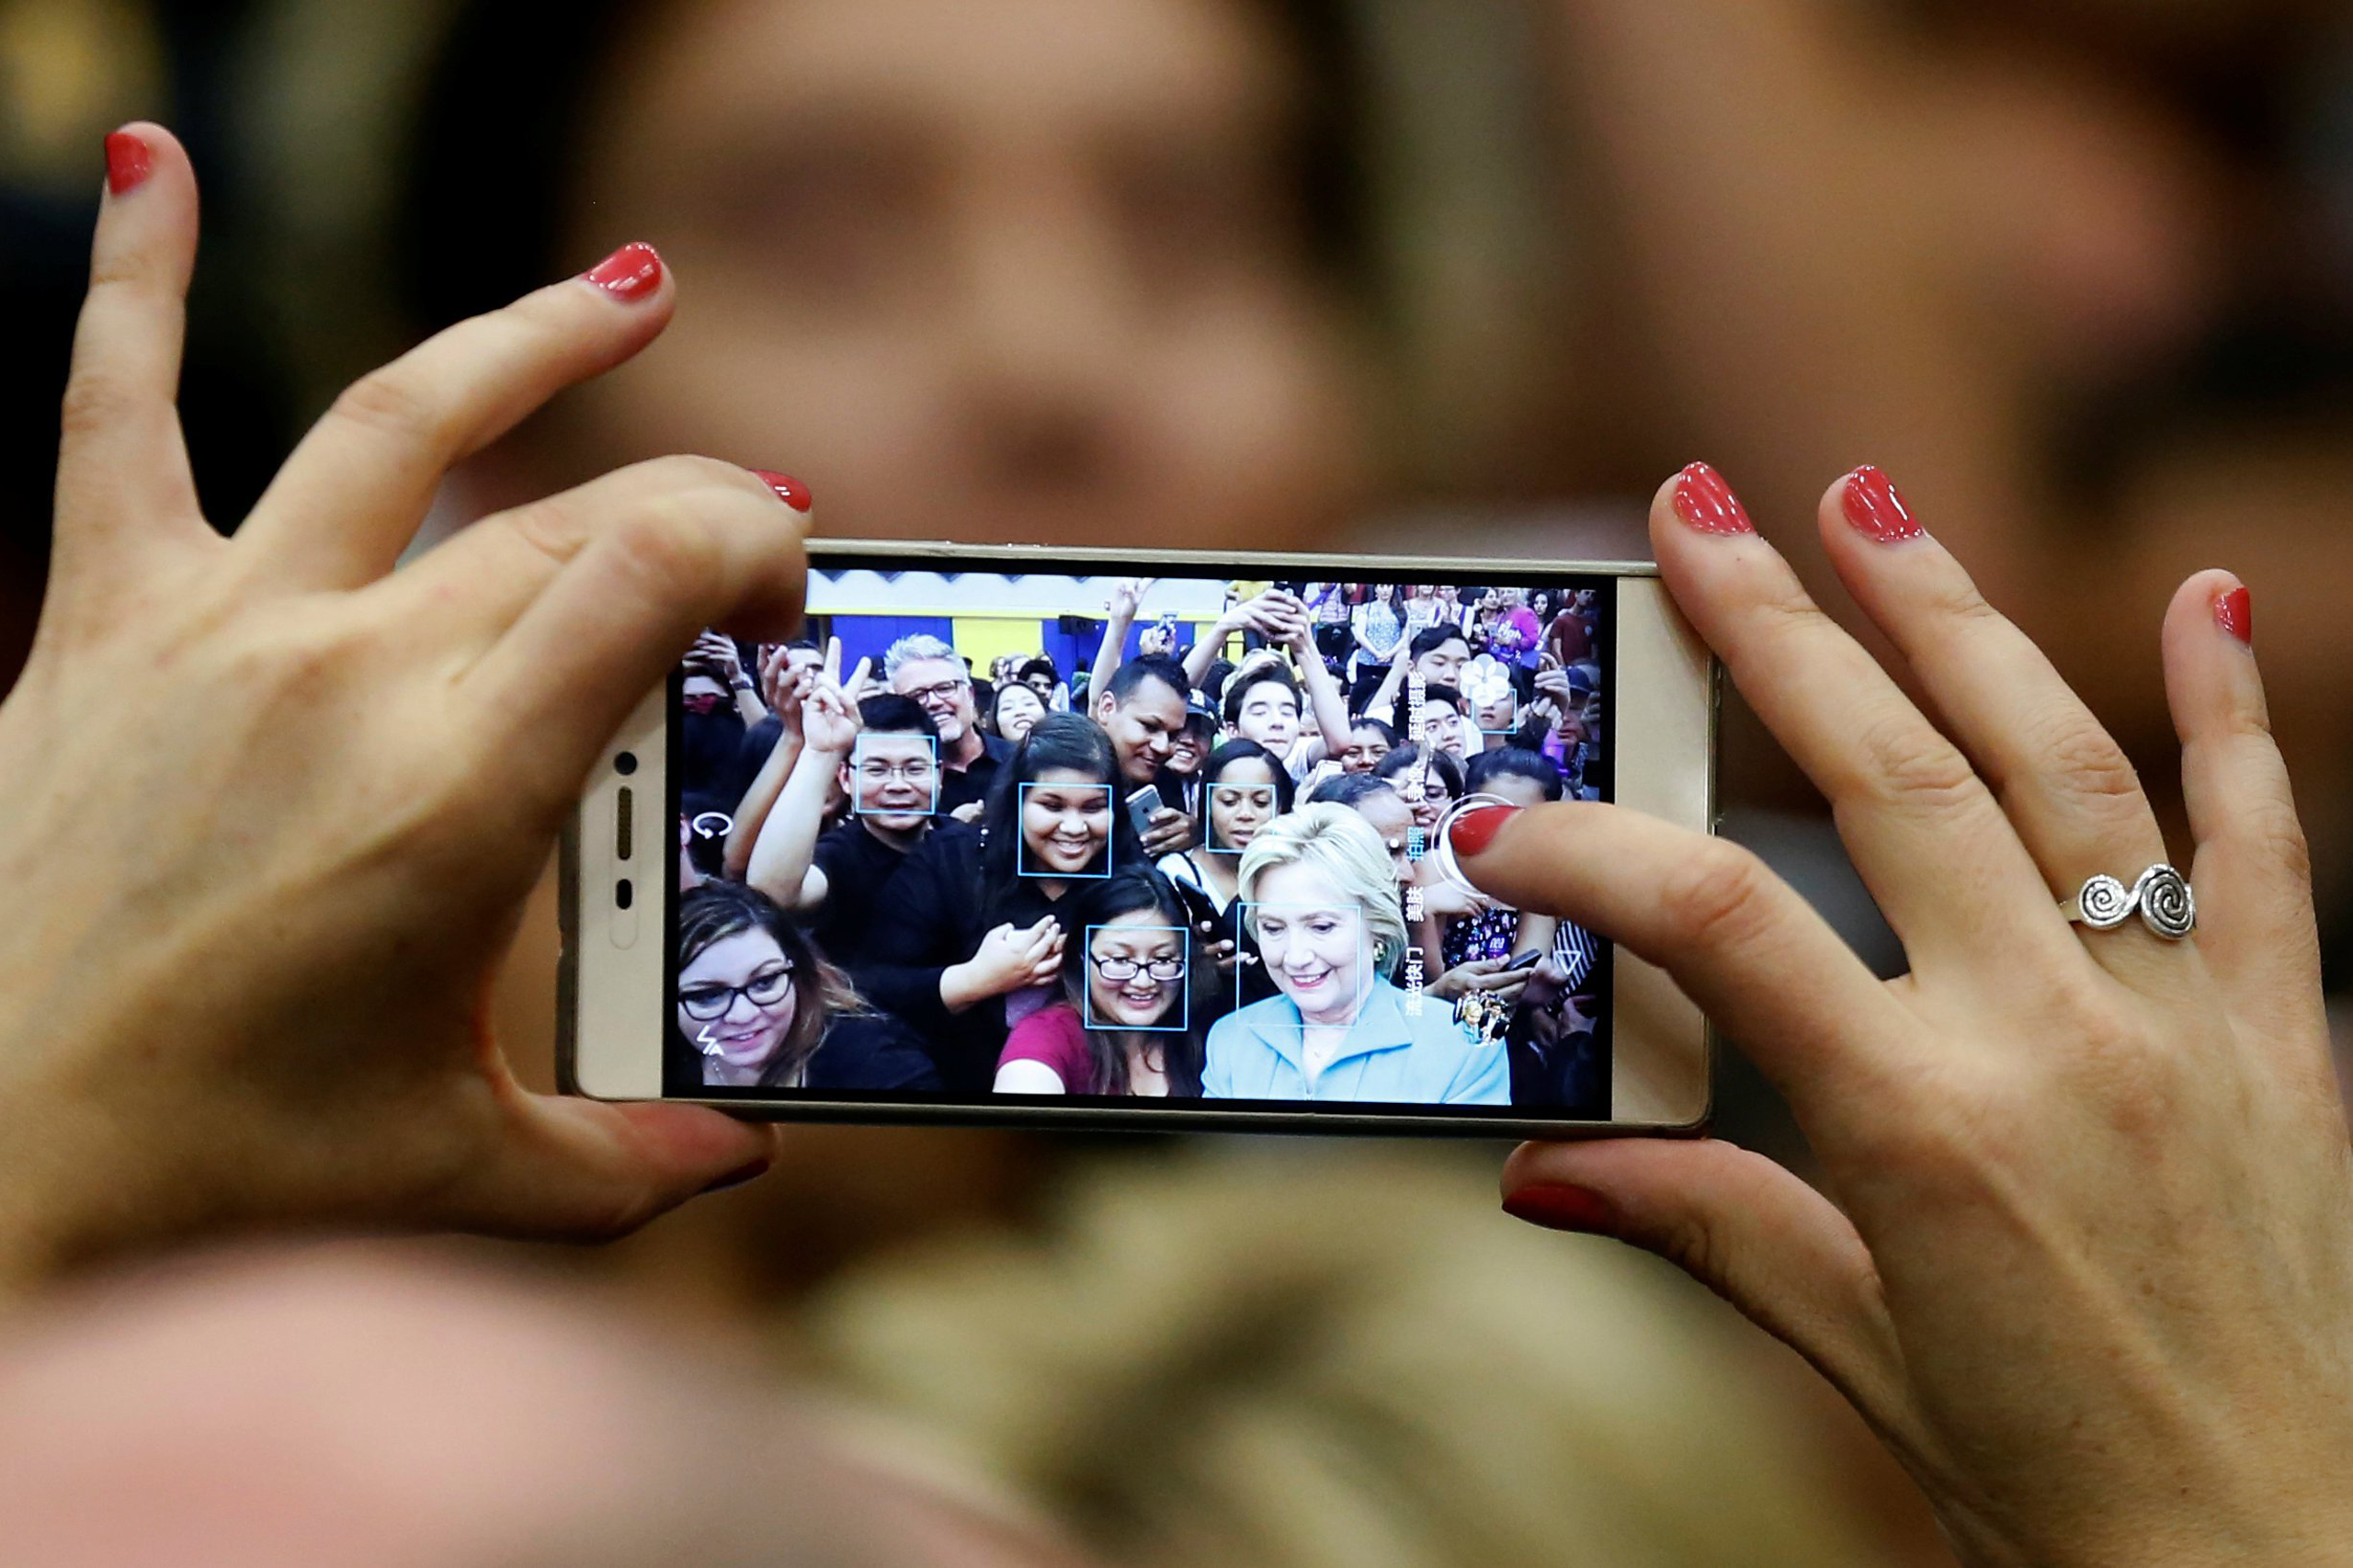 Democratic presidential candidate Hillary Clinton takes a selfie with supporters after speaking at the University of California Riverside in Riverside, Calif., on May 24, 2016.